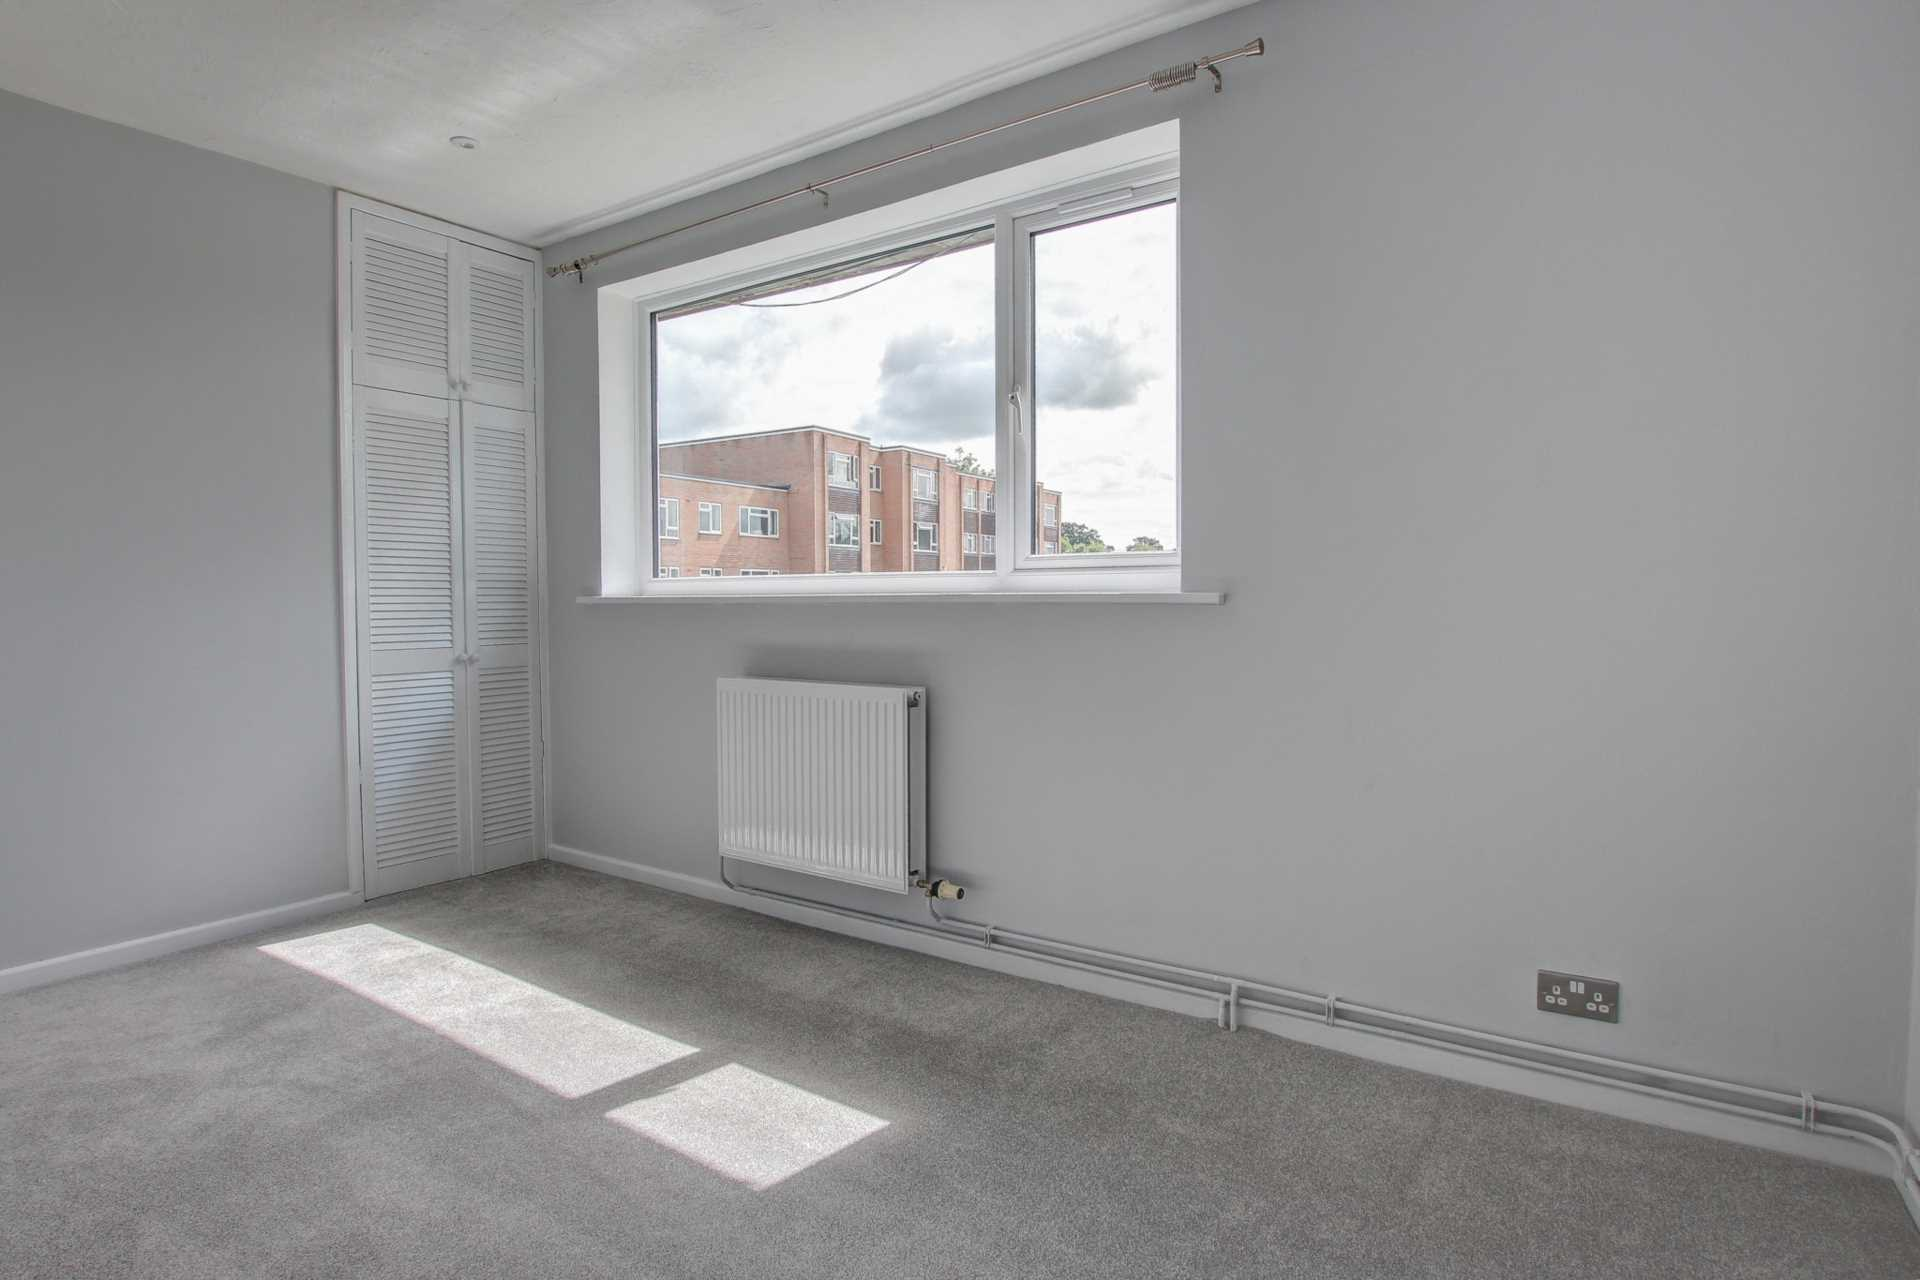 2 bed end of terrace house to rent in Fishers Close, Blandford Forum, Blandford Forum  - Property Image 8